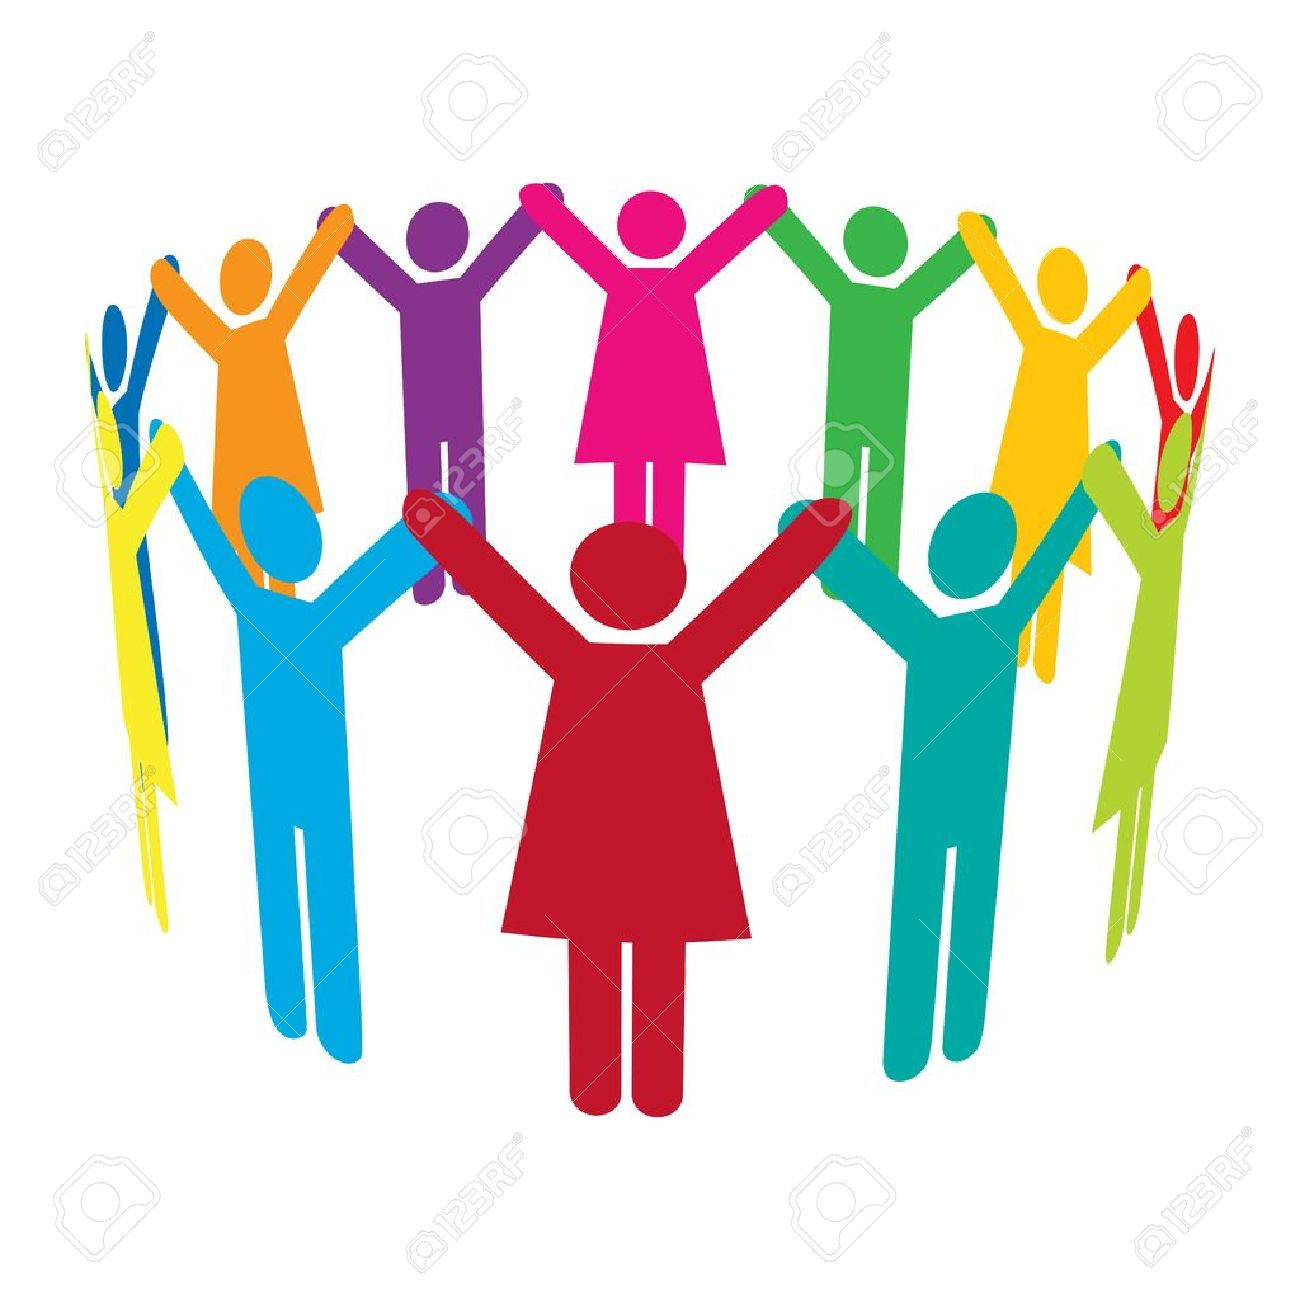 colourful people holding hands high up in a circle royalty free rh 123rf com Hands Holding Globe Clip Art Hands Holding Globe Clip Art